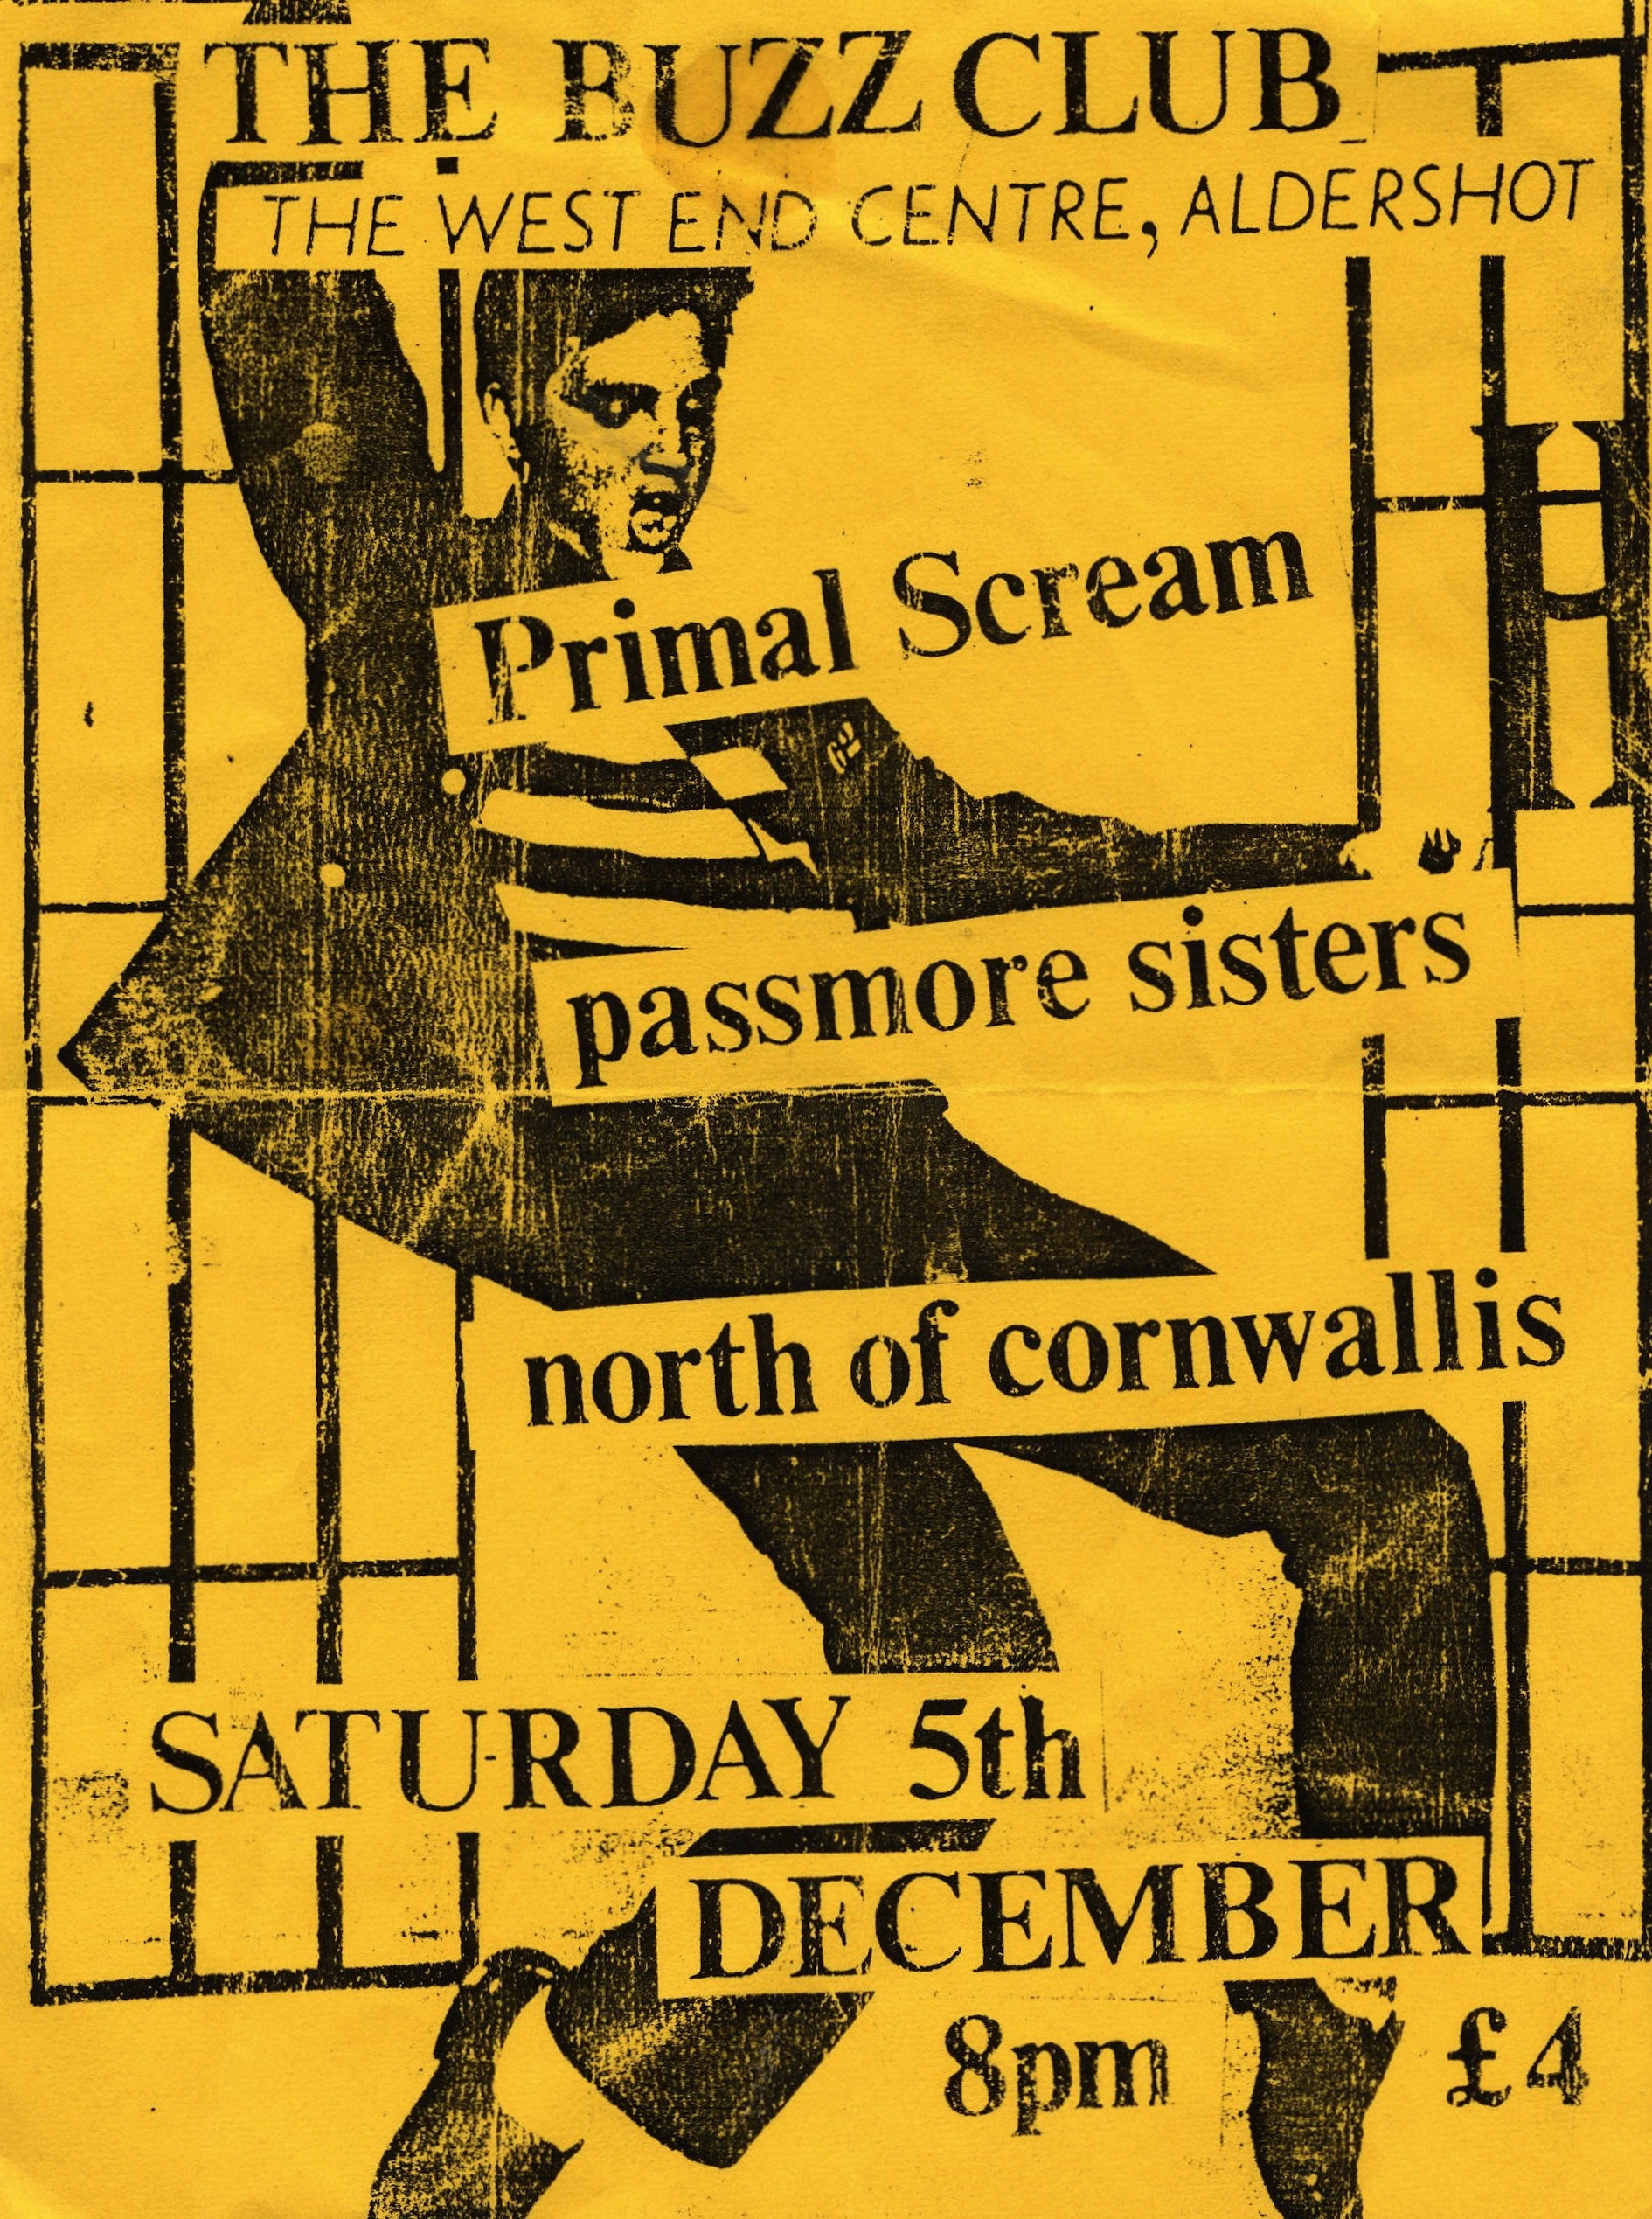 Primal Scream - West End Centre, Aldershot 051287